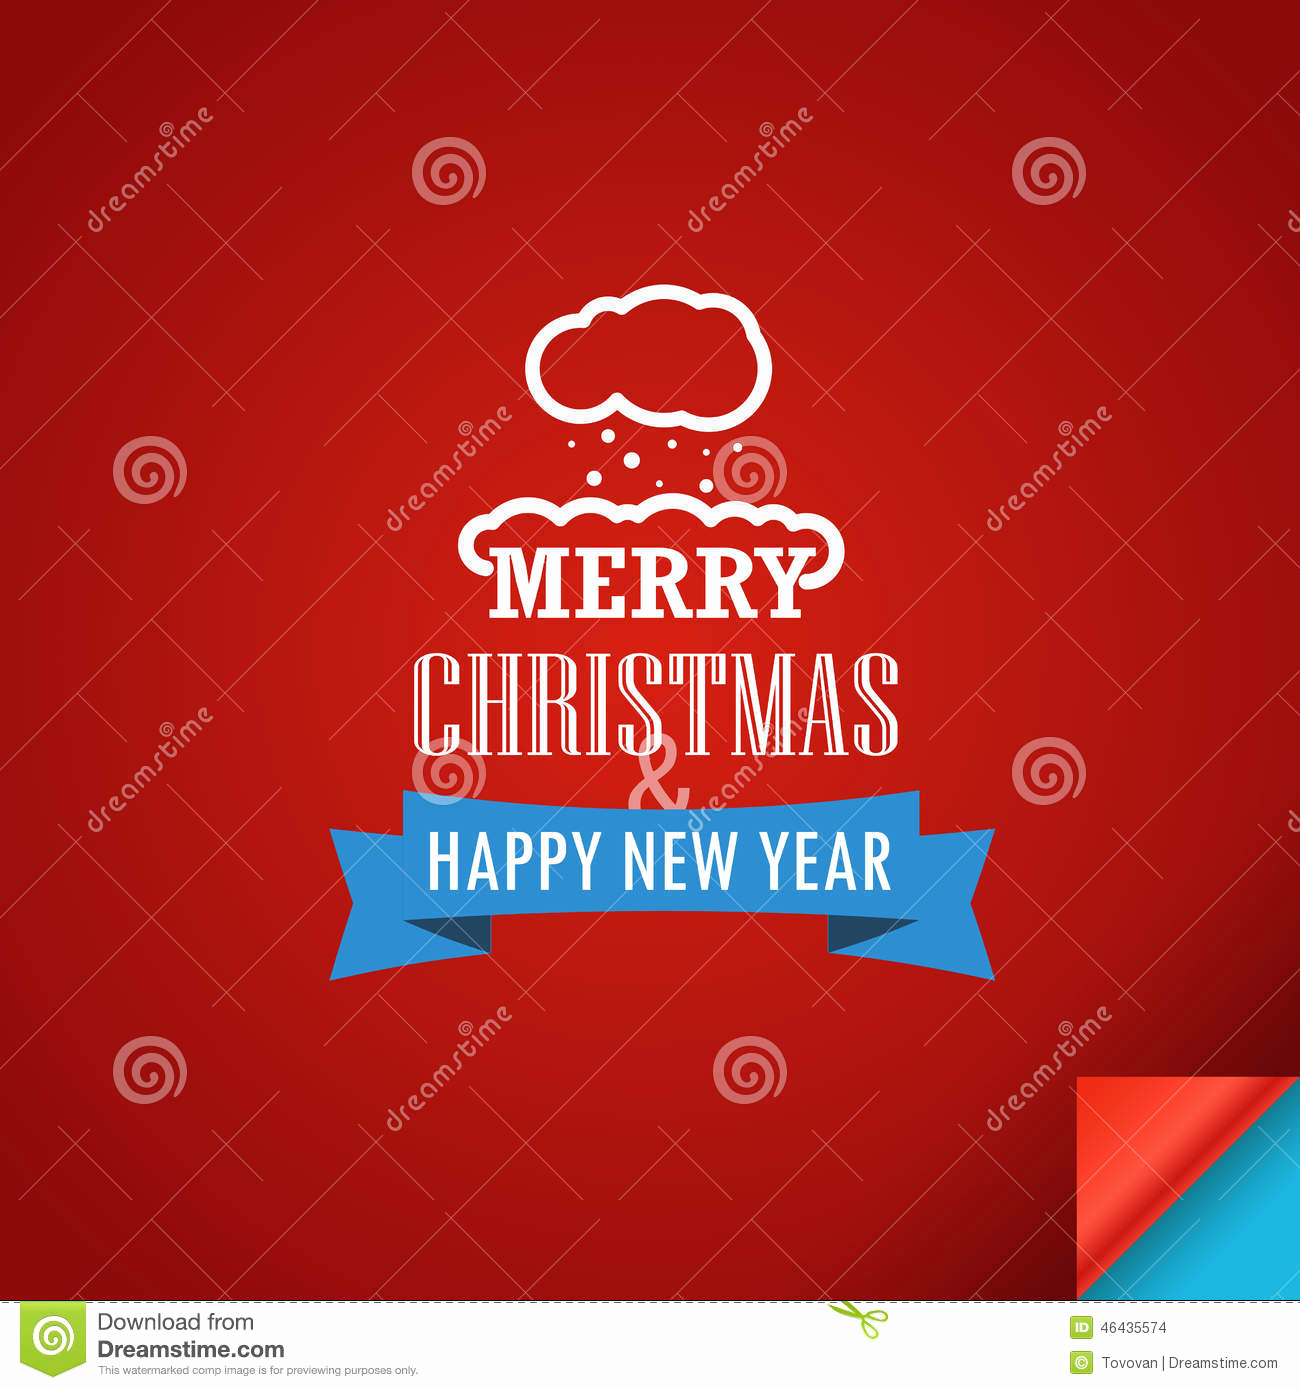 New Year Card Template Elegant Merry Christmas and A Happy New Year Greeting Card Stock